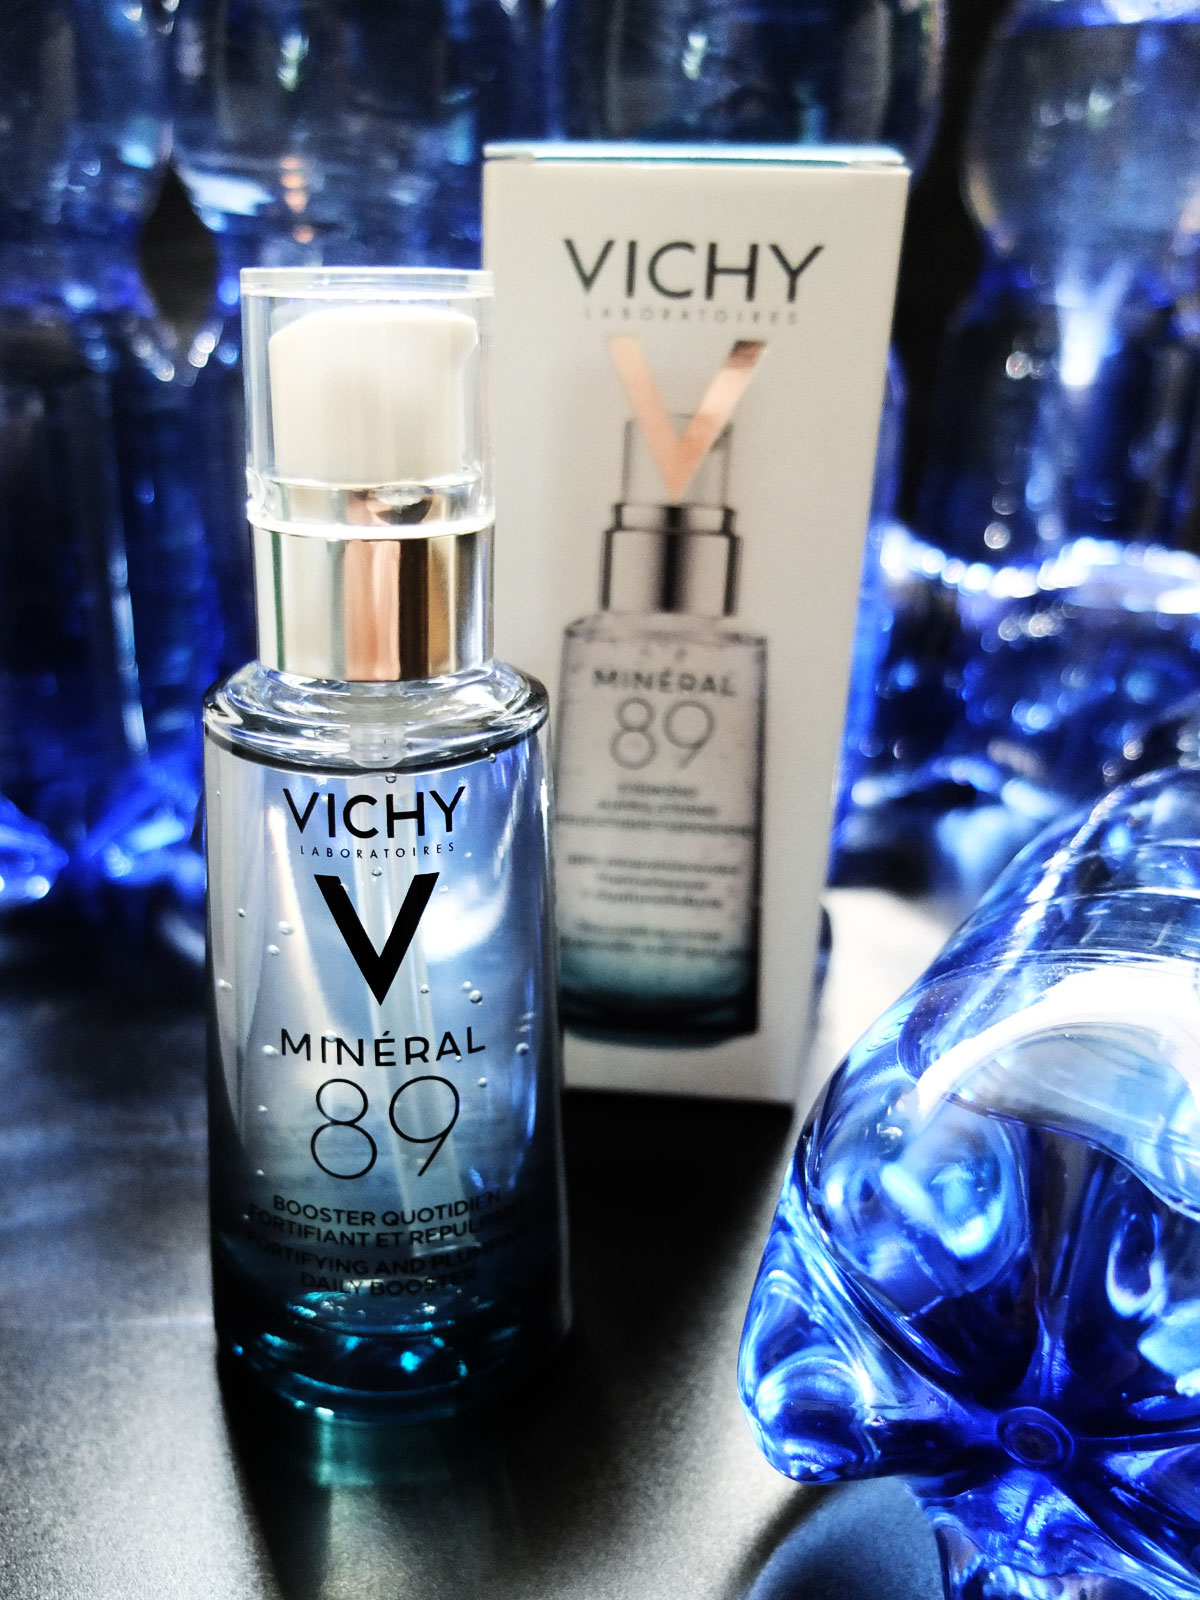 Beauty-Vichy-Mineral-89-Hyaluron-Boost-Maennerhaut-Maennerpflege